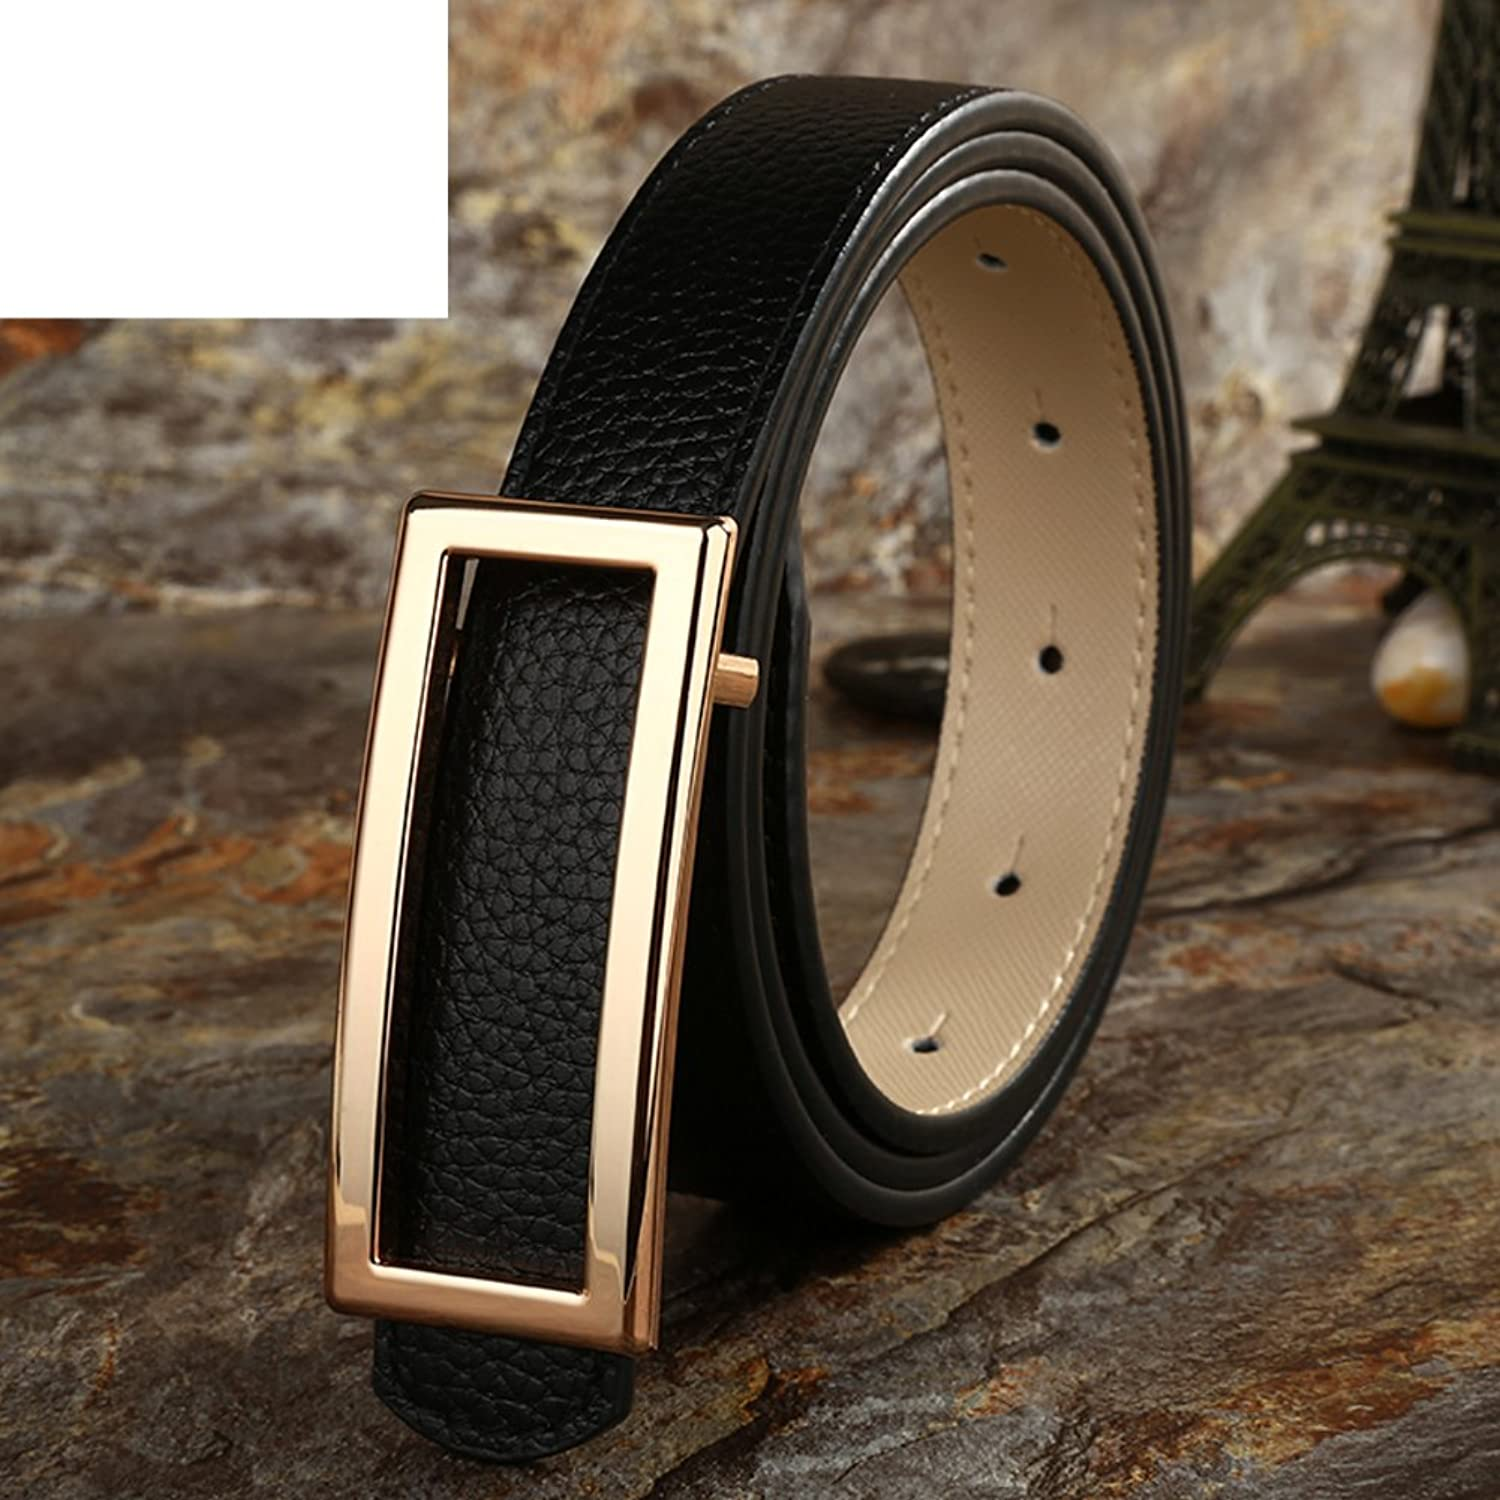 Leather belt simple fashion hundredlap belt casual fine white beltB 110cm(43inch)